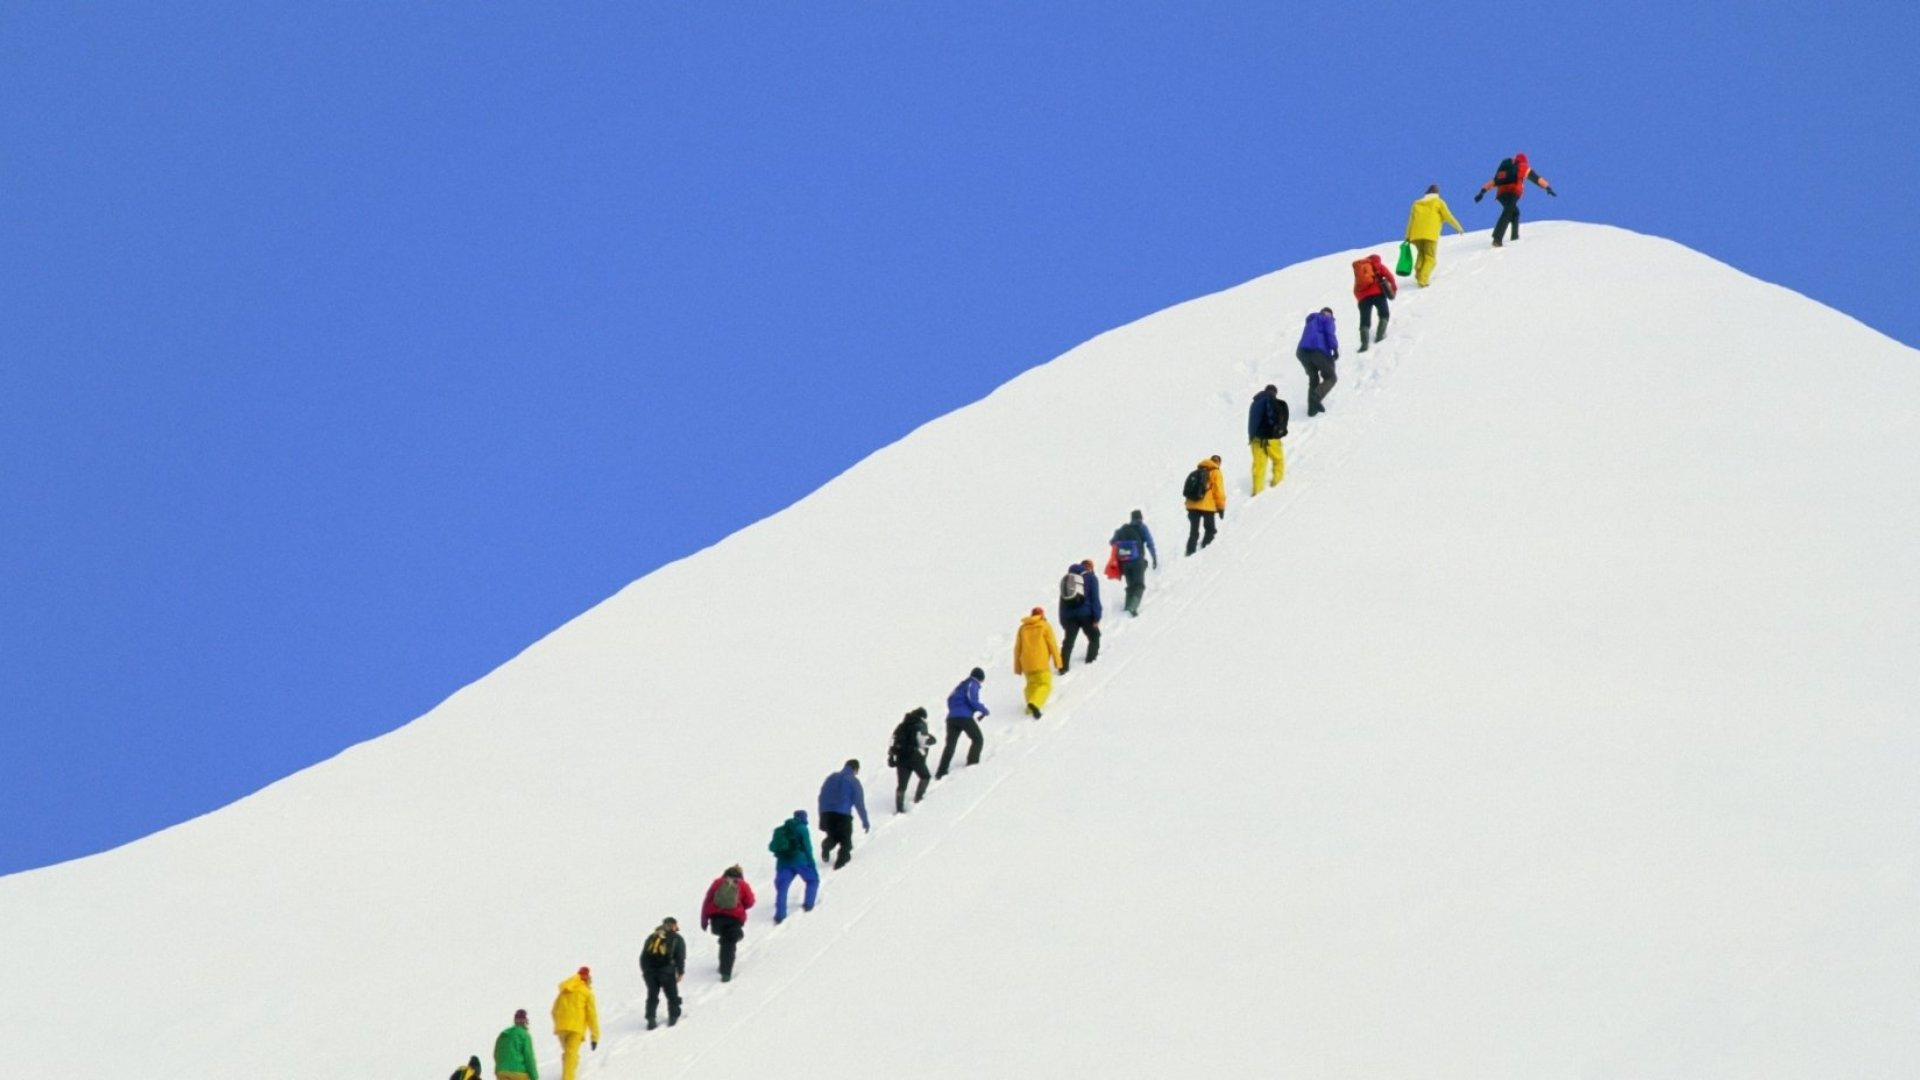 7 Traits You Need to Be a Highly Effective Leader